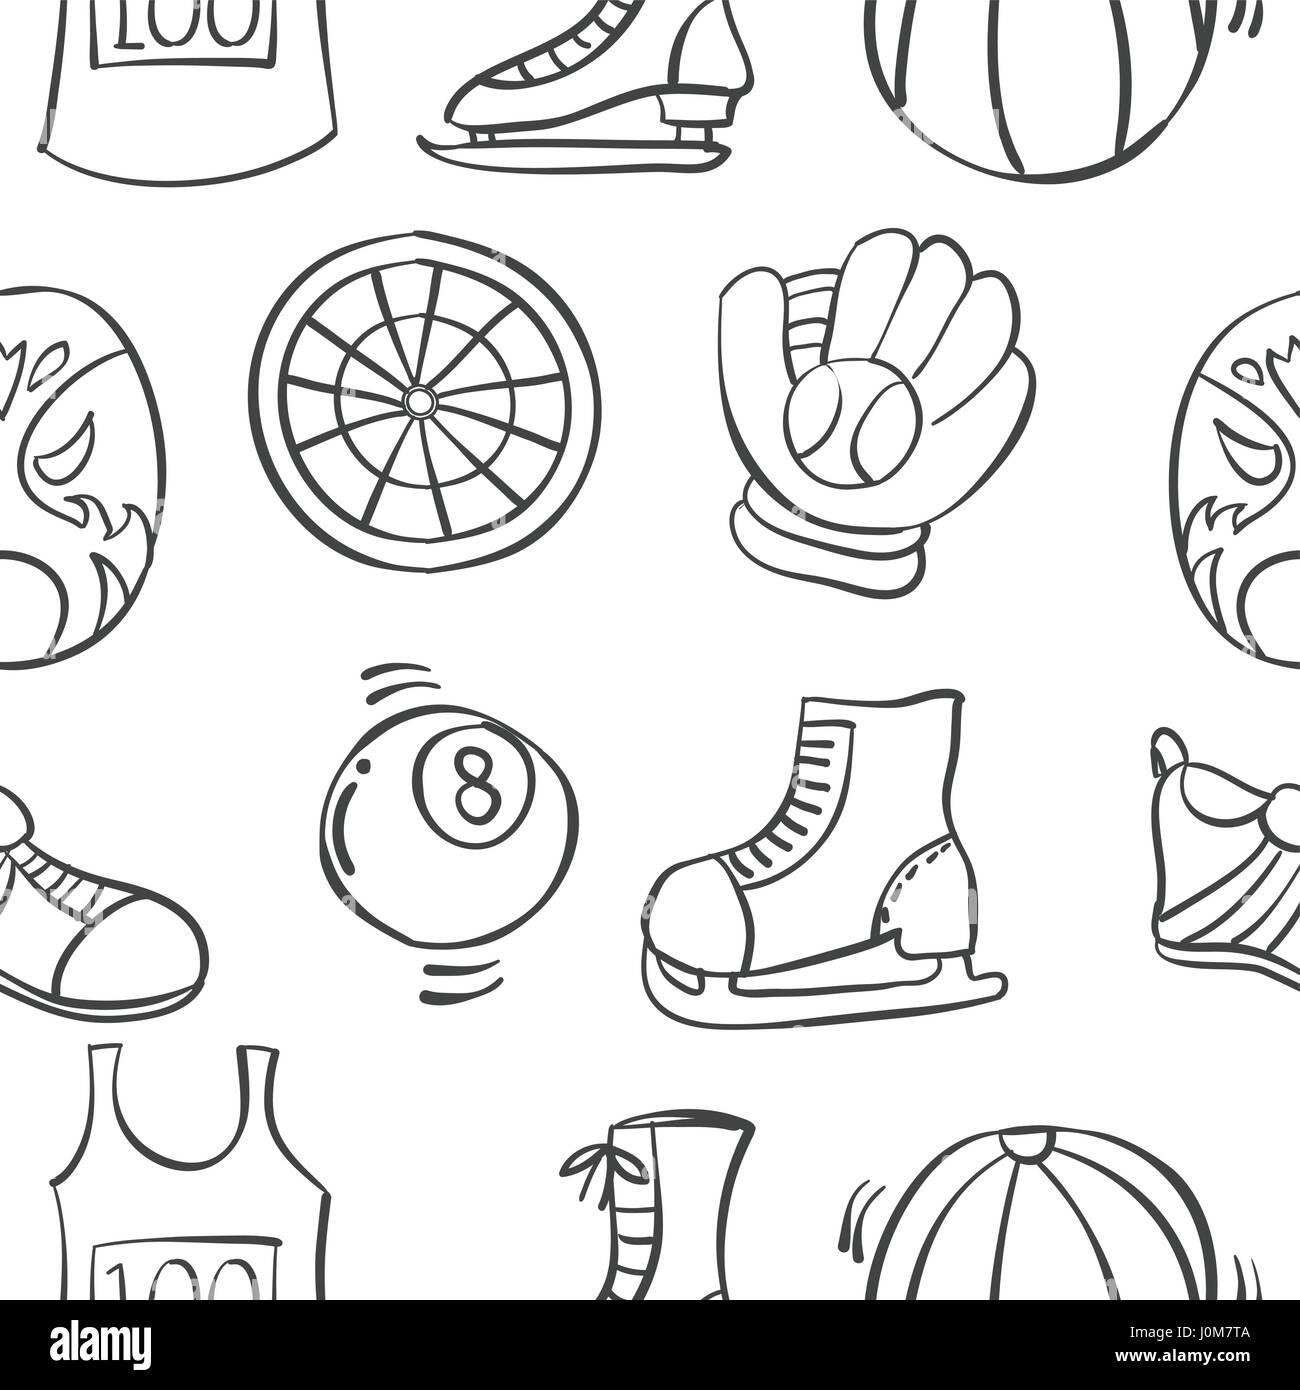 Doodle of sport equipment various pattern - Stock Image